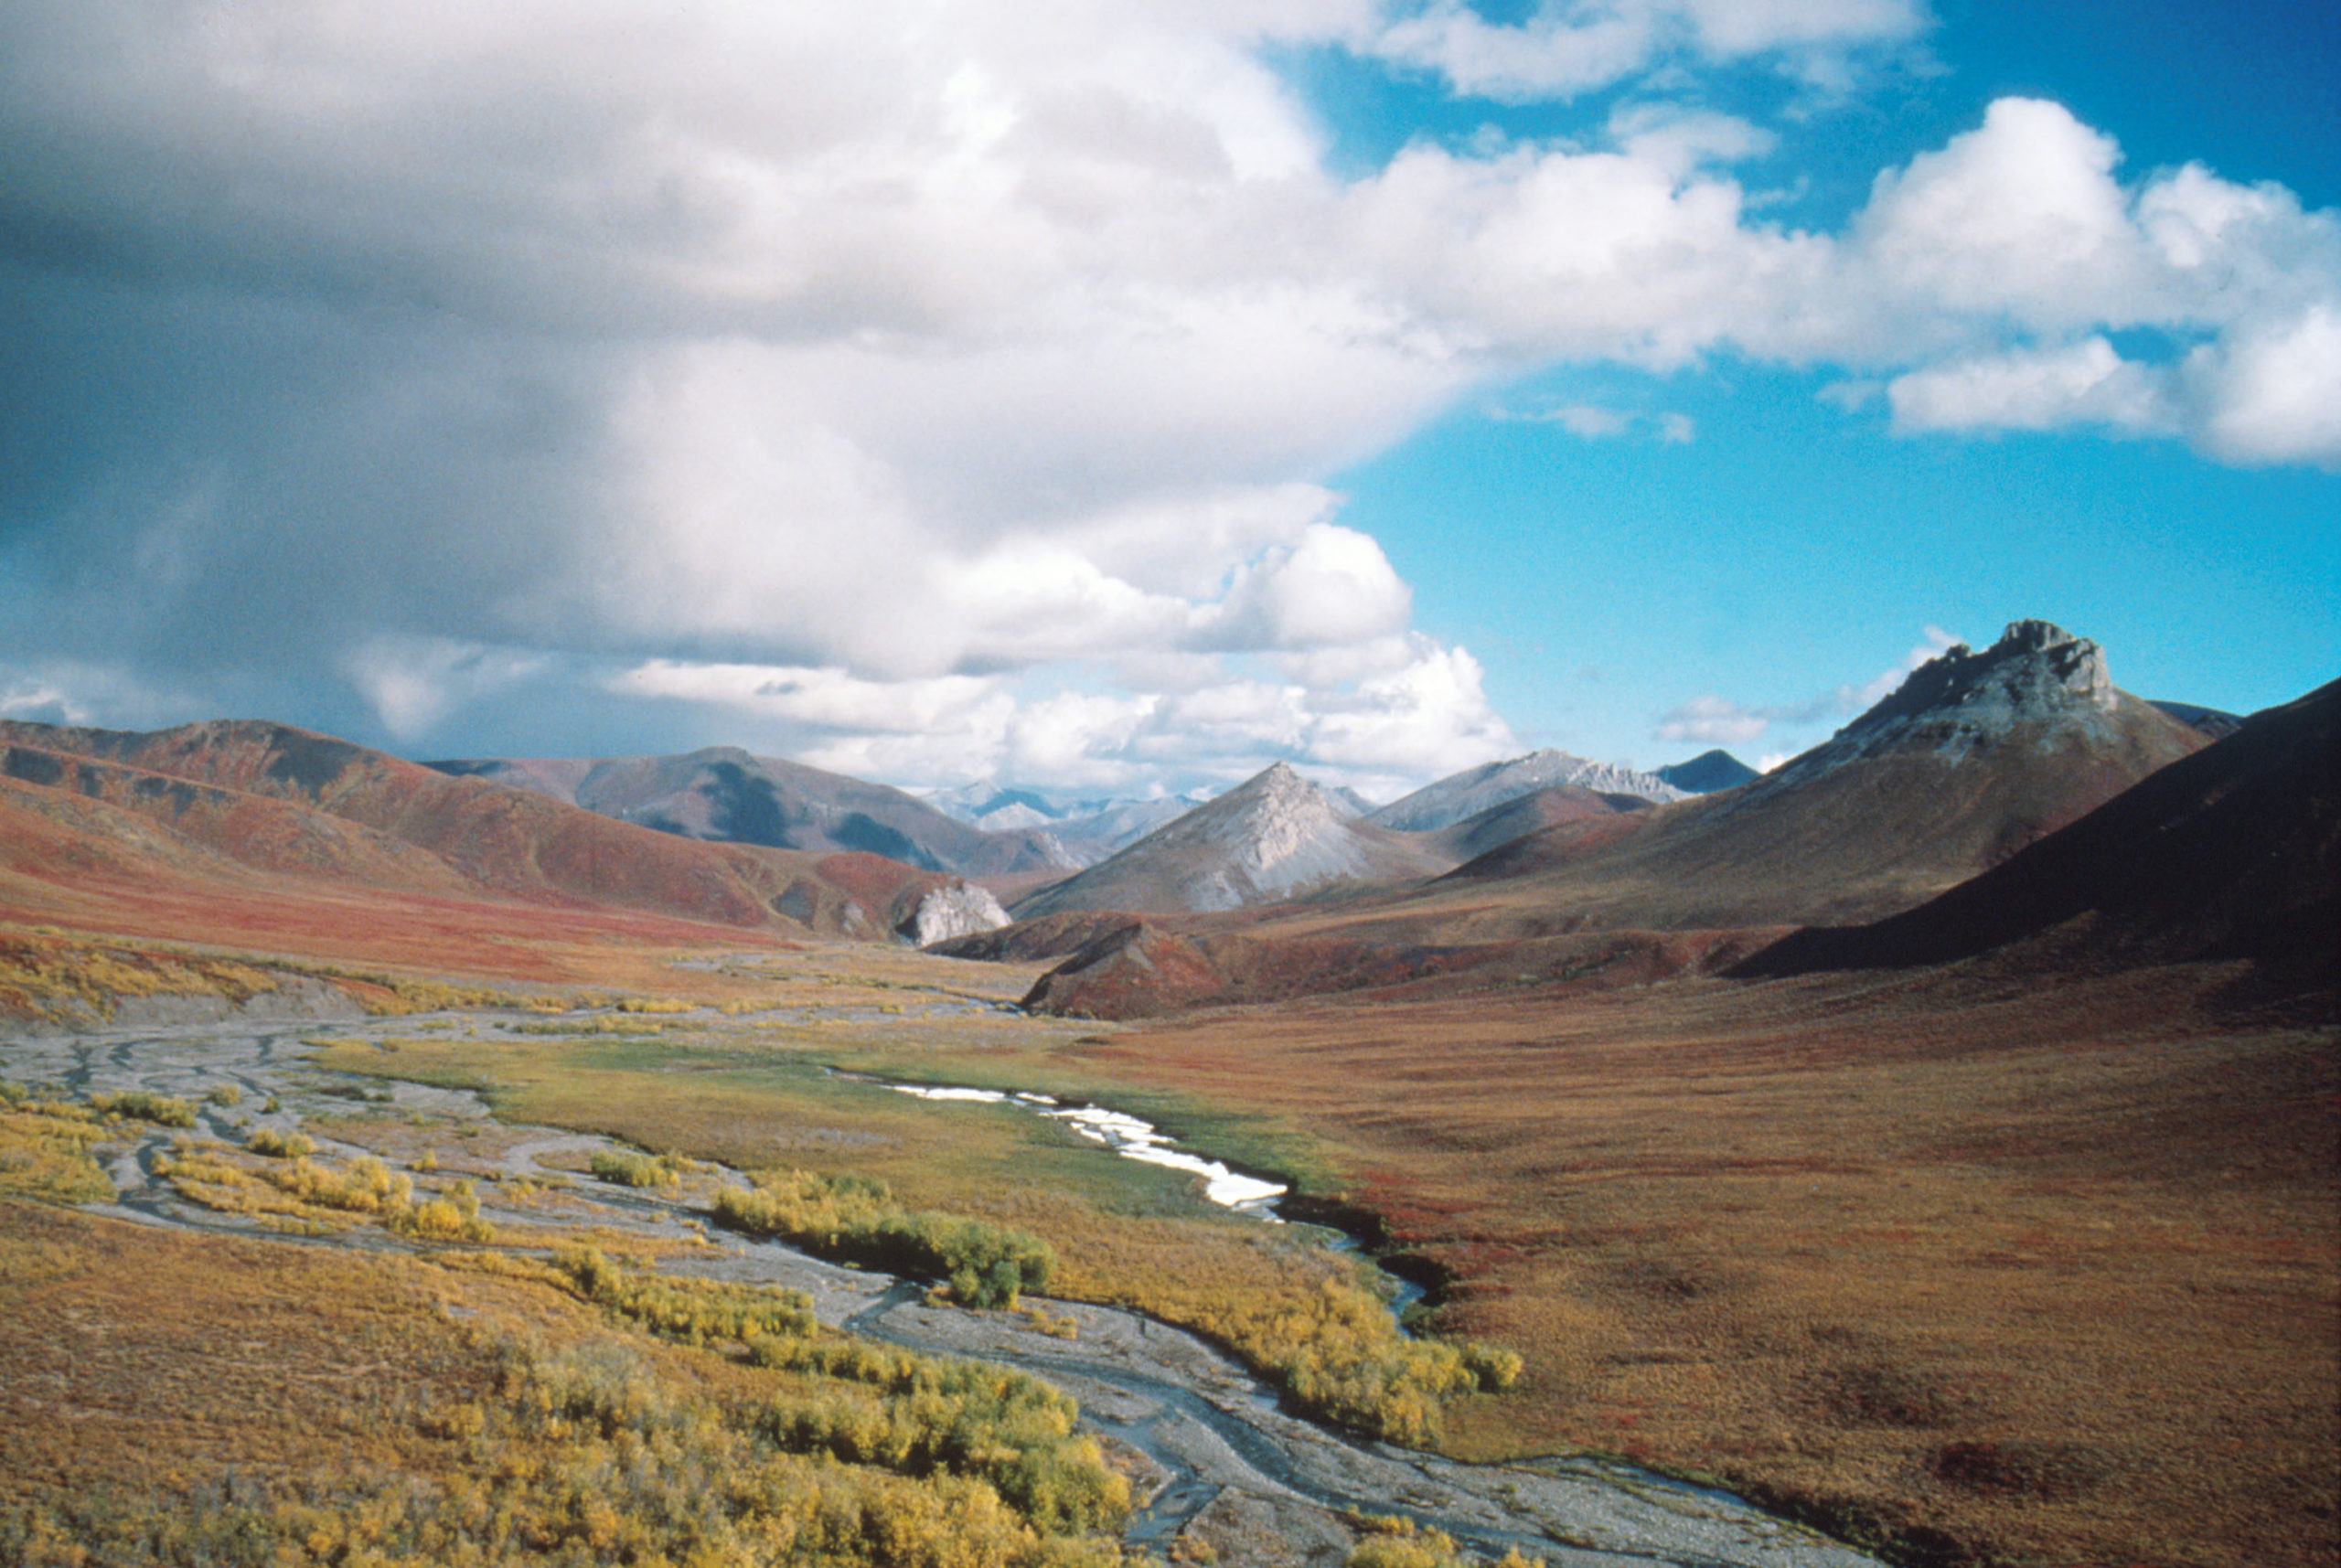 392886 20: (FILE PHOTO) This undated photo shows the Arctic National Wildlife Refuge in Alaska. The Bush administration''s controversial plan to open the refuge to oil drilling was approved by the House of Representatives on August 2, 2001, but it faces a tough battle in the Senate. (Photo by U.S. Fish and Wildlife Service/Getty Images)